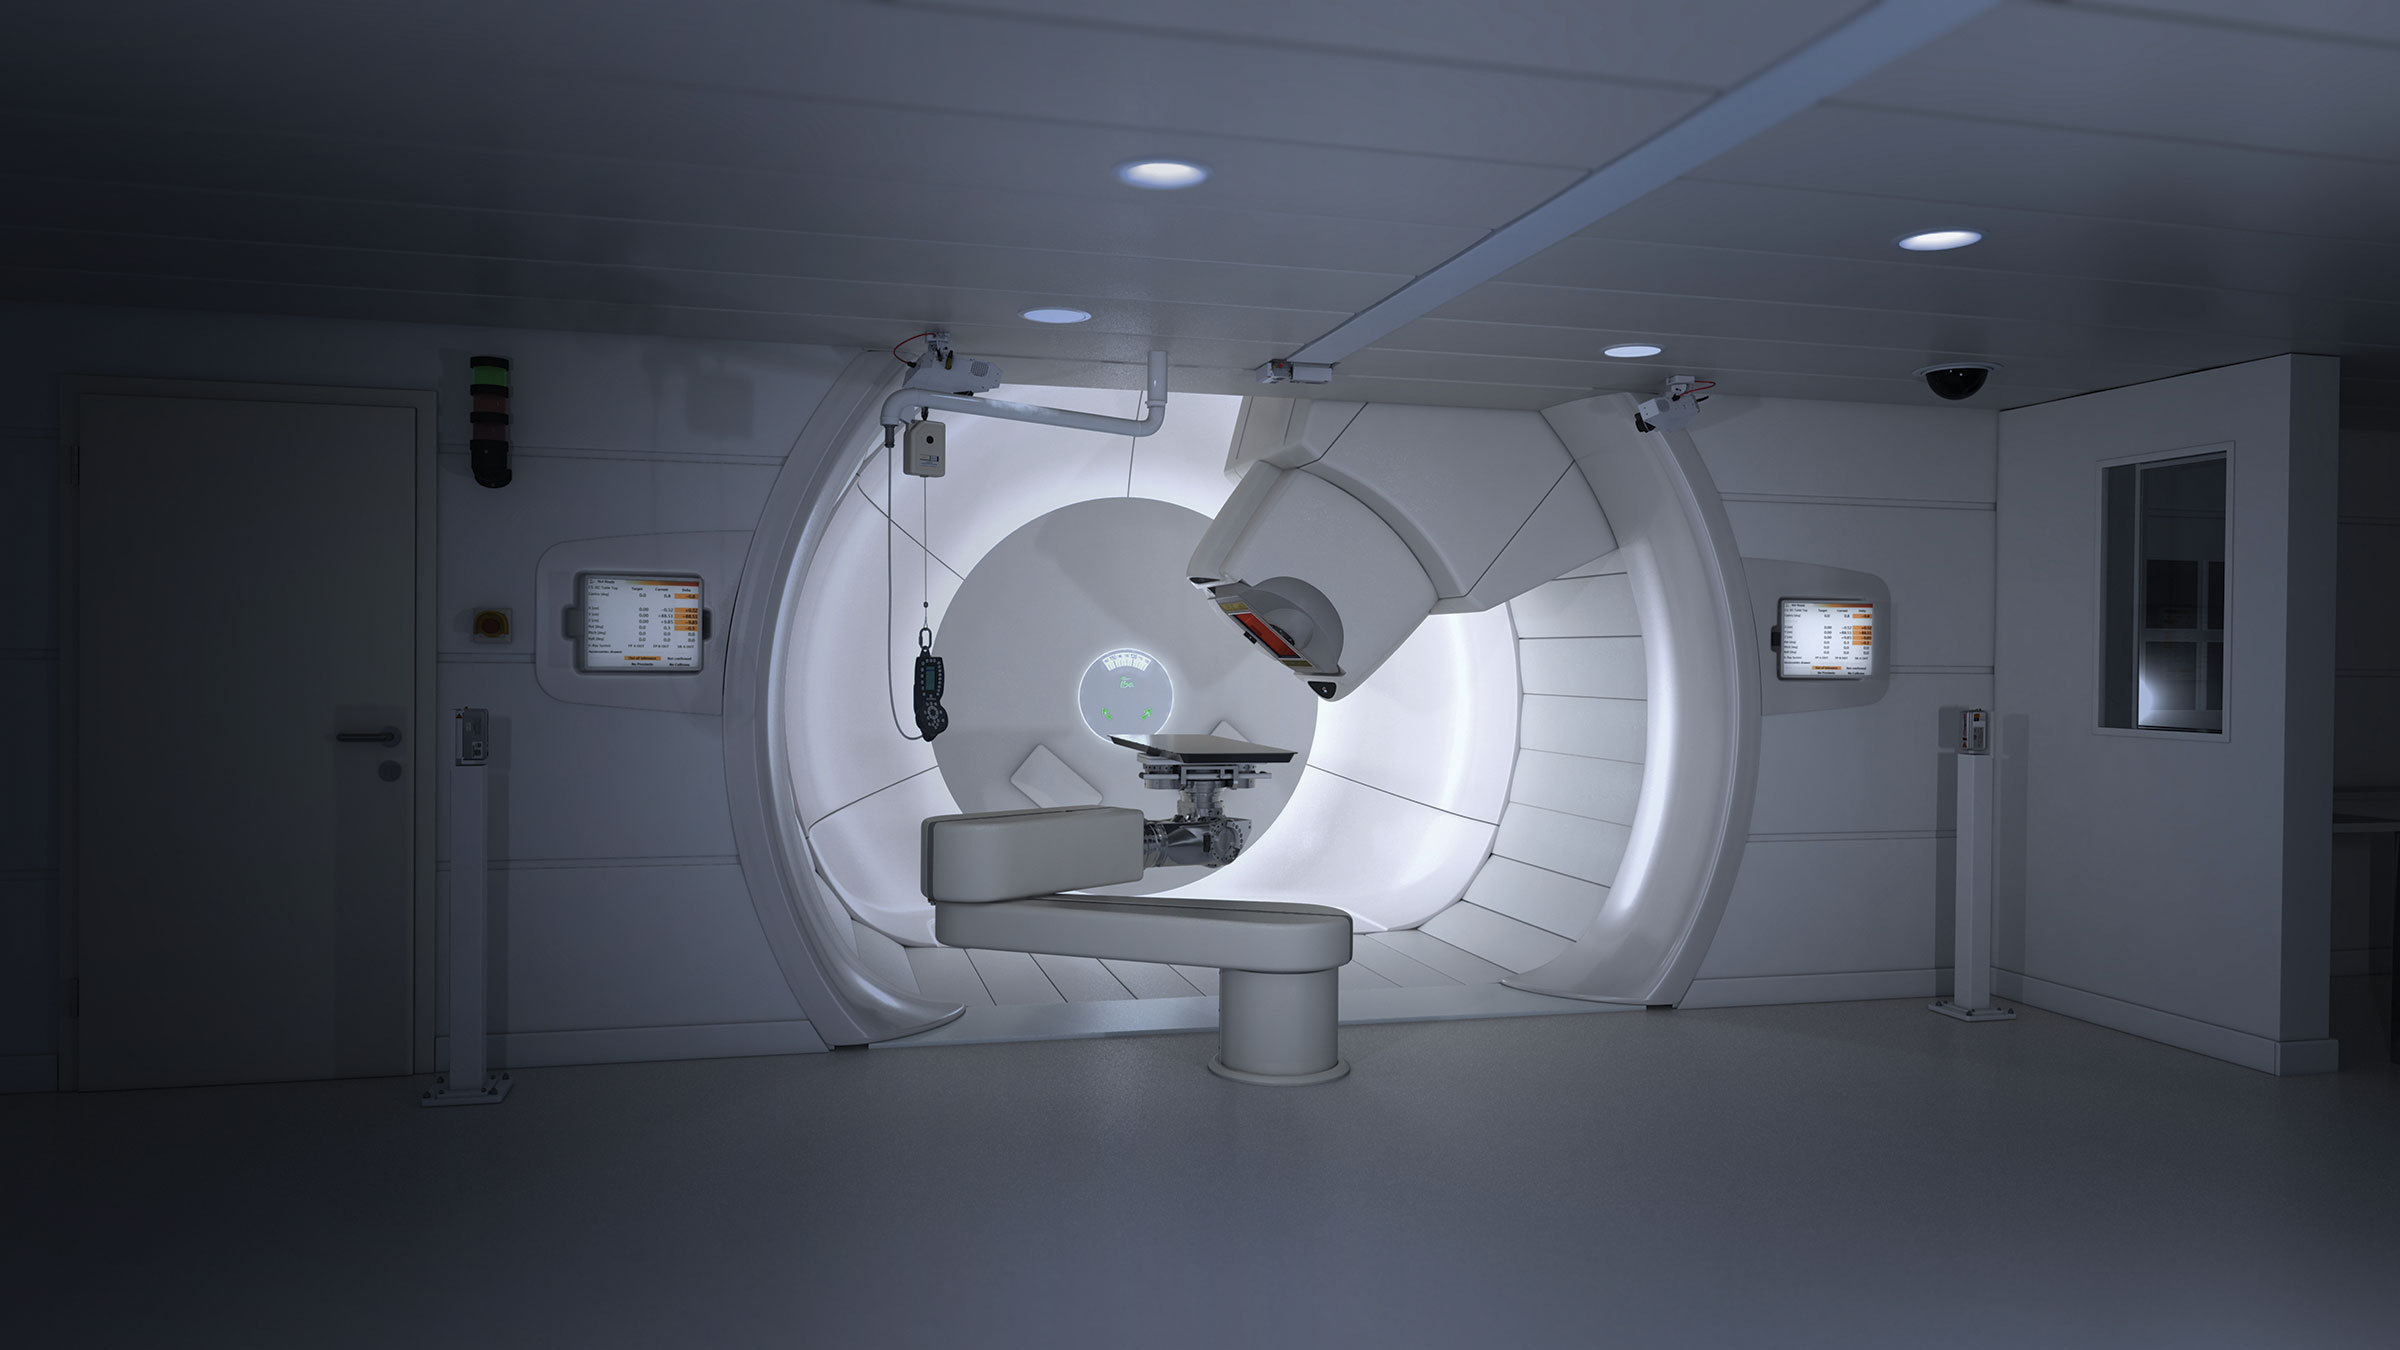 Low four-year rates of gastrointestinal (13.6 percent) and urologic issues (7.6 percent) suggest hypofractionated proton therapy as an alternative to traditional radiotherapy to reduce toxicity.